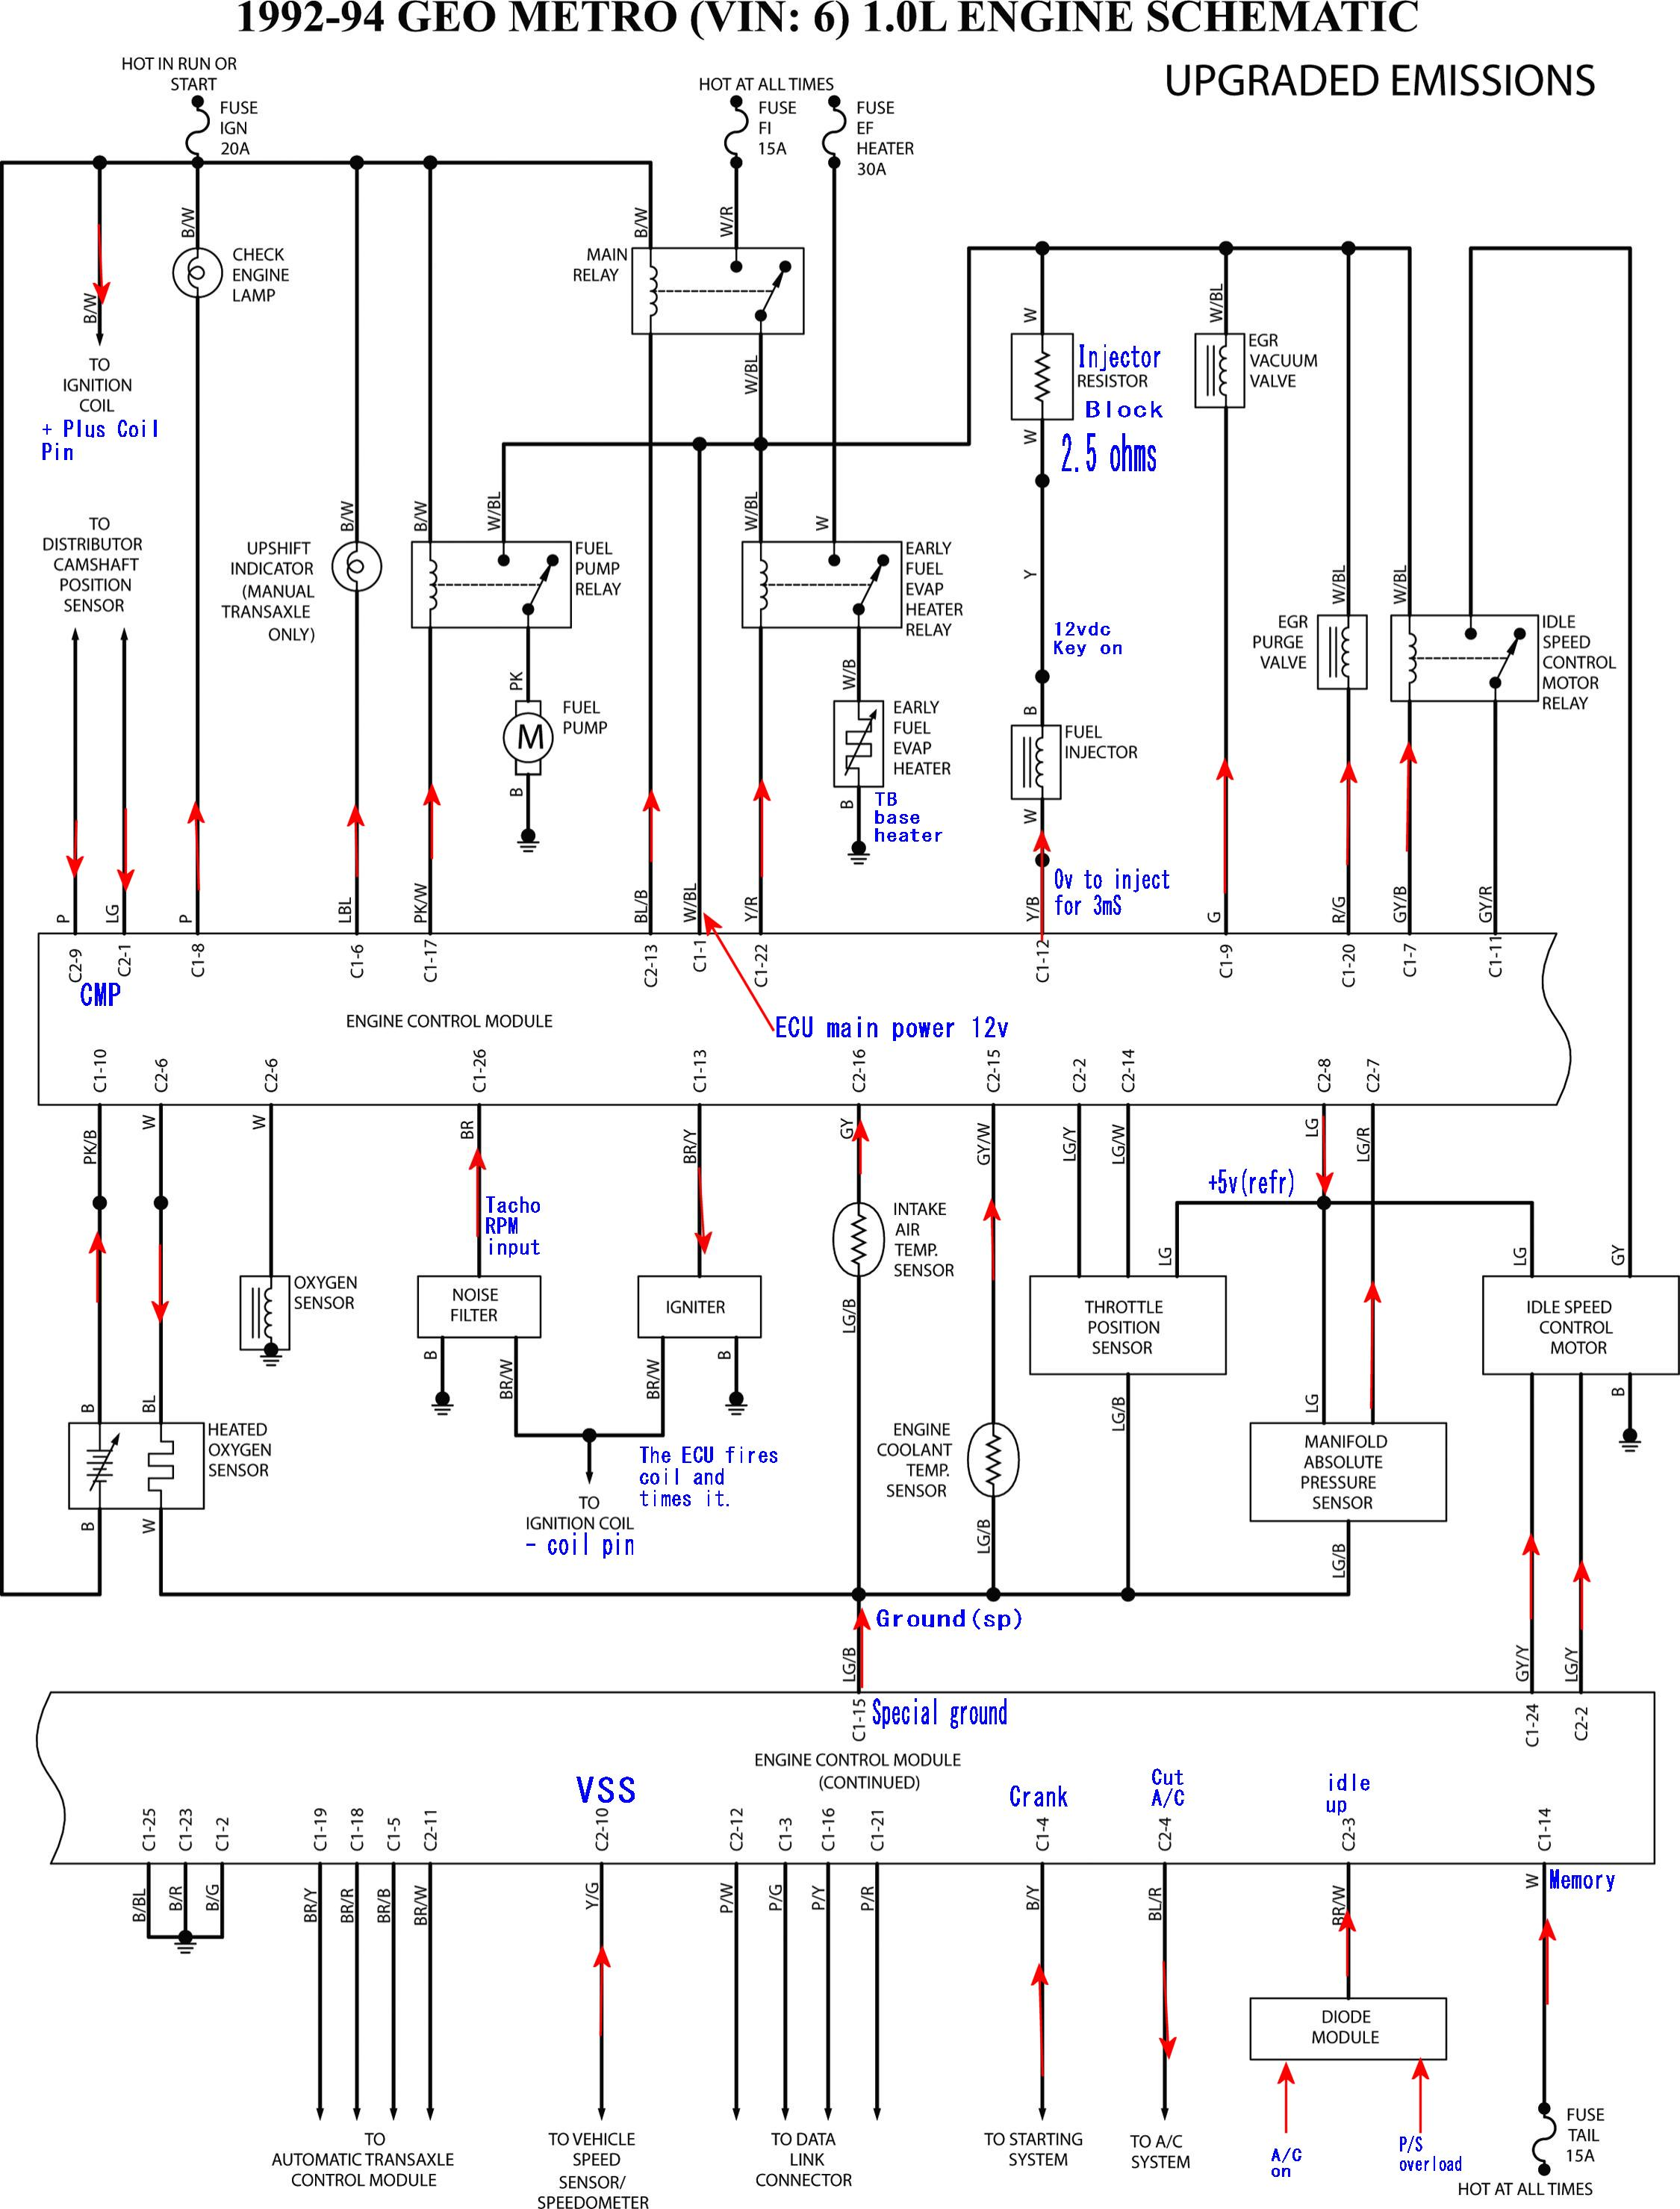 khyber car wiring diagram khyber image wiring diagram suzuki m13a engine diagram suzuki wiring diagrams on khyber car wiring diagram